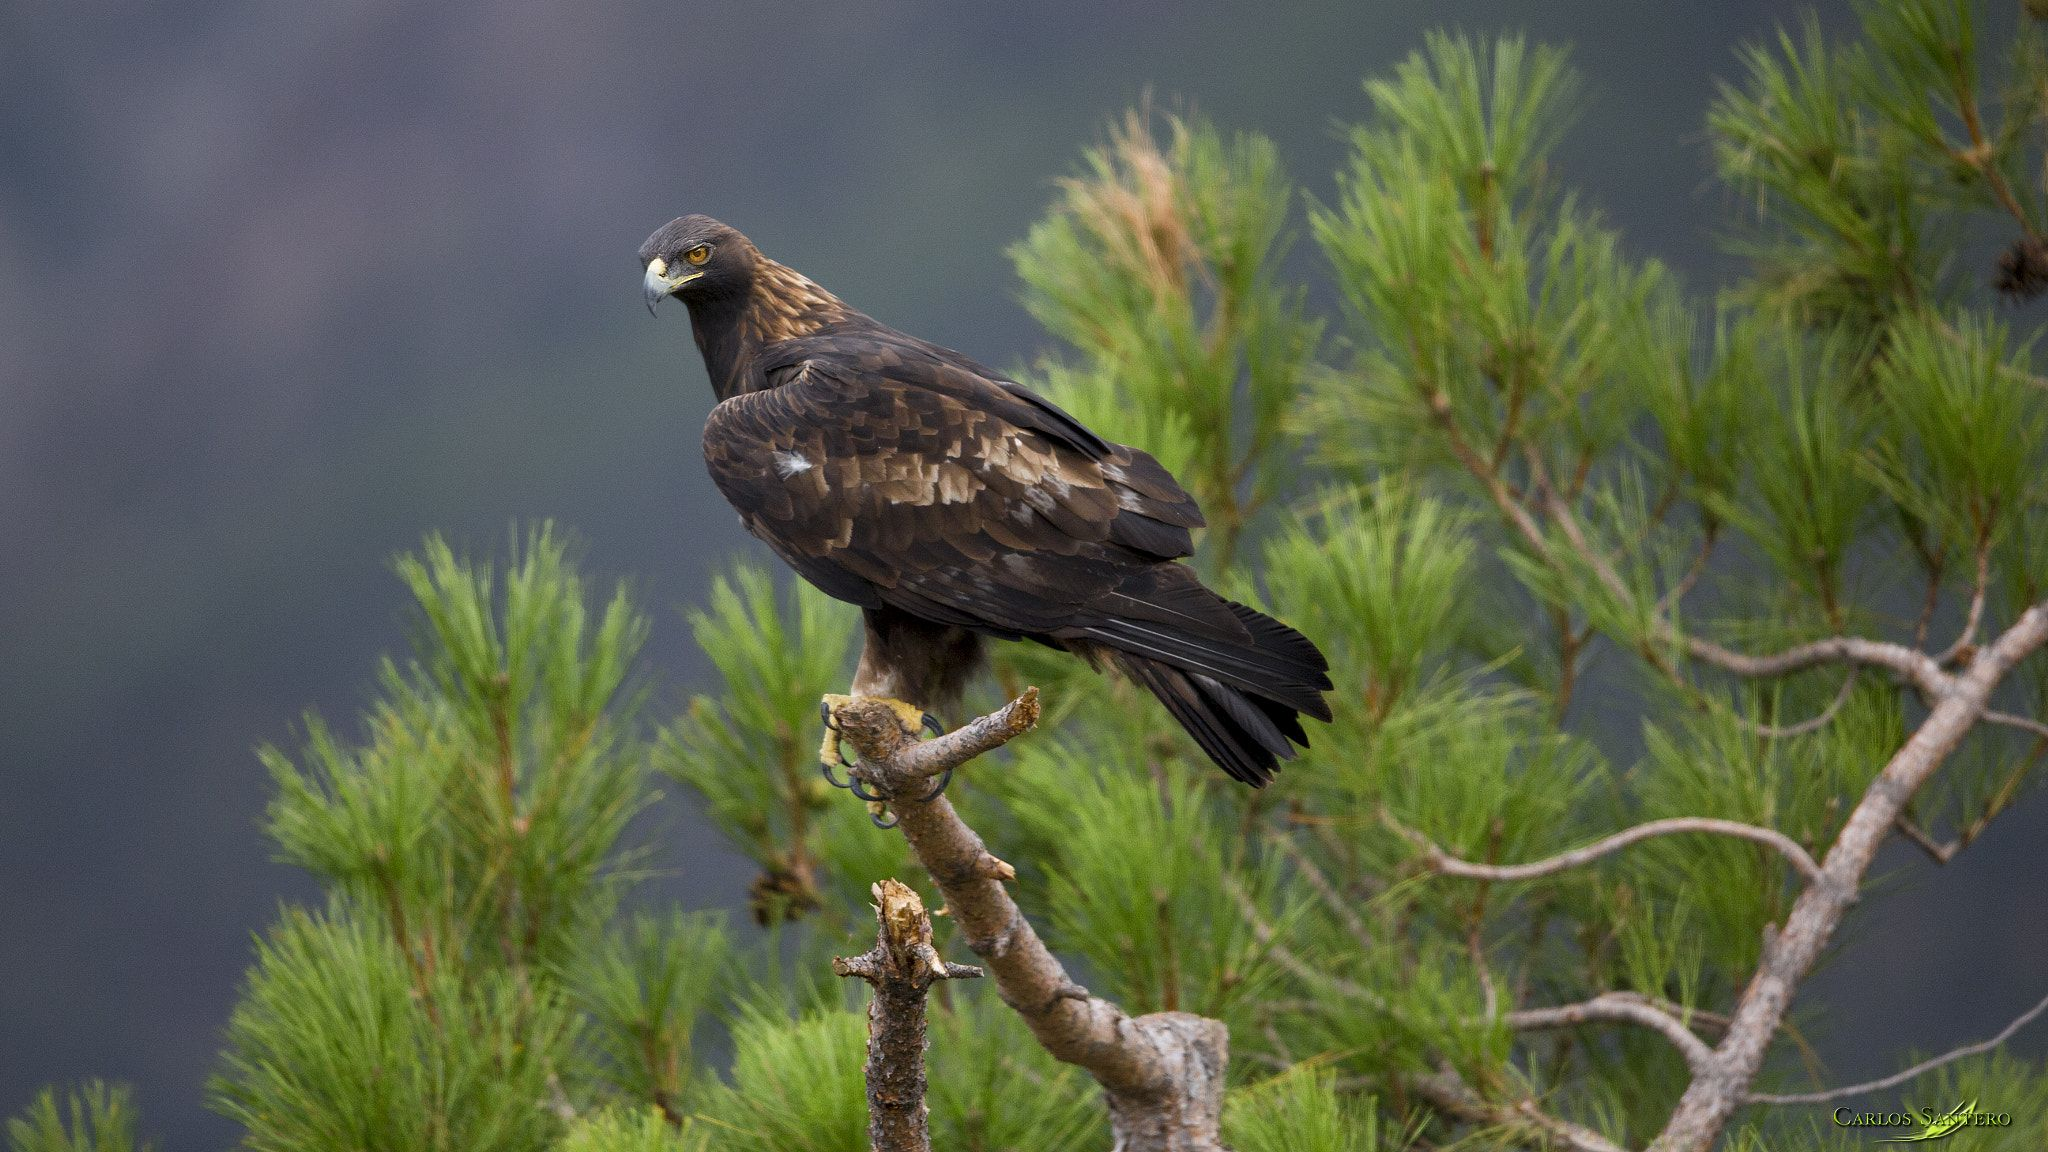 Majestic Raptor The Golden Eagle National Symbol Of Mexico The